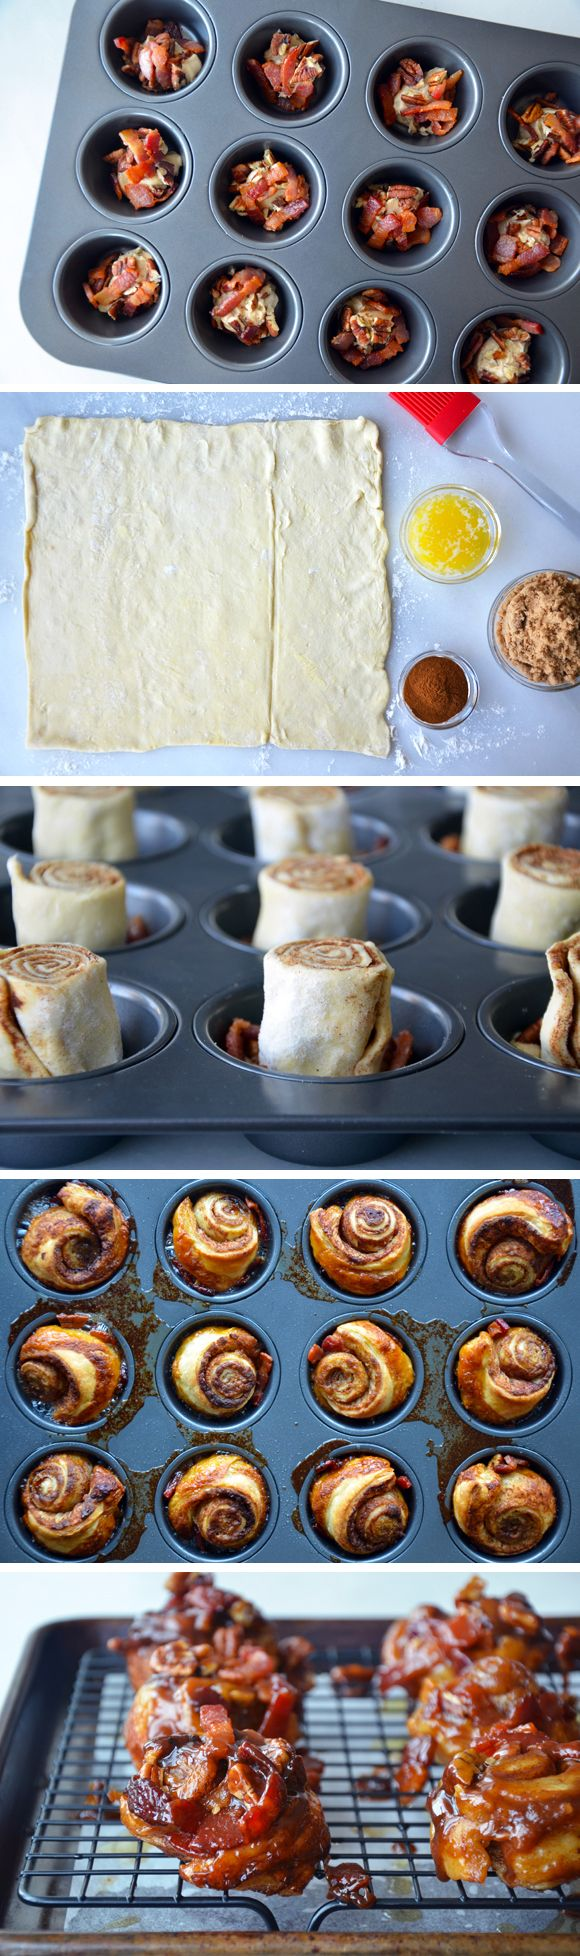 Easy Sticky Buns with Bacon from justataste.com #recipe